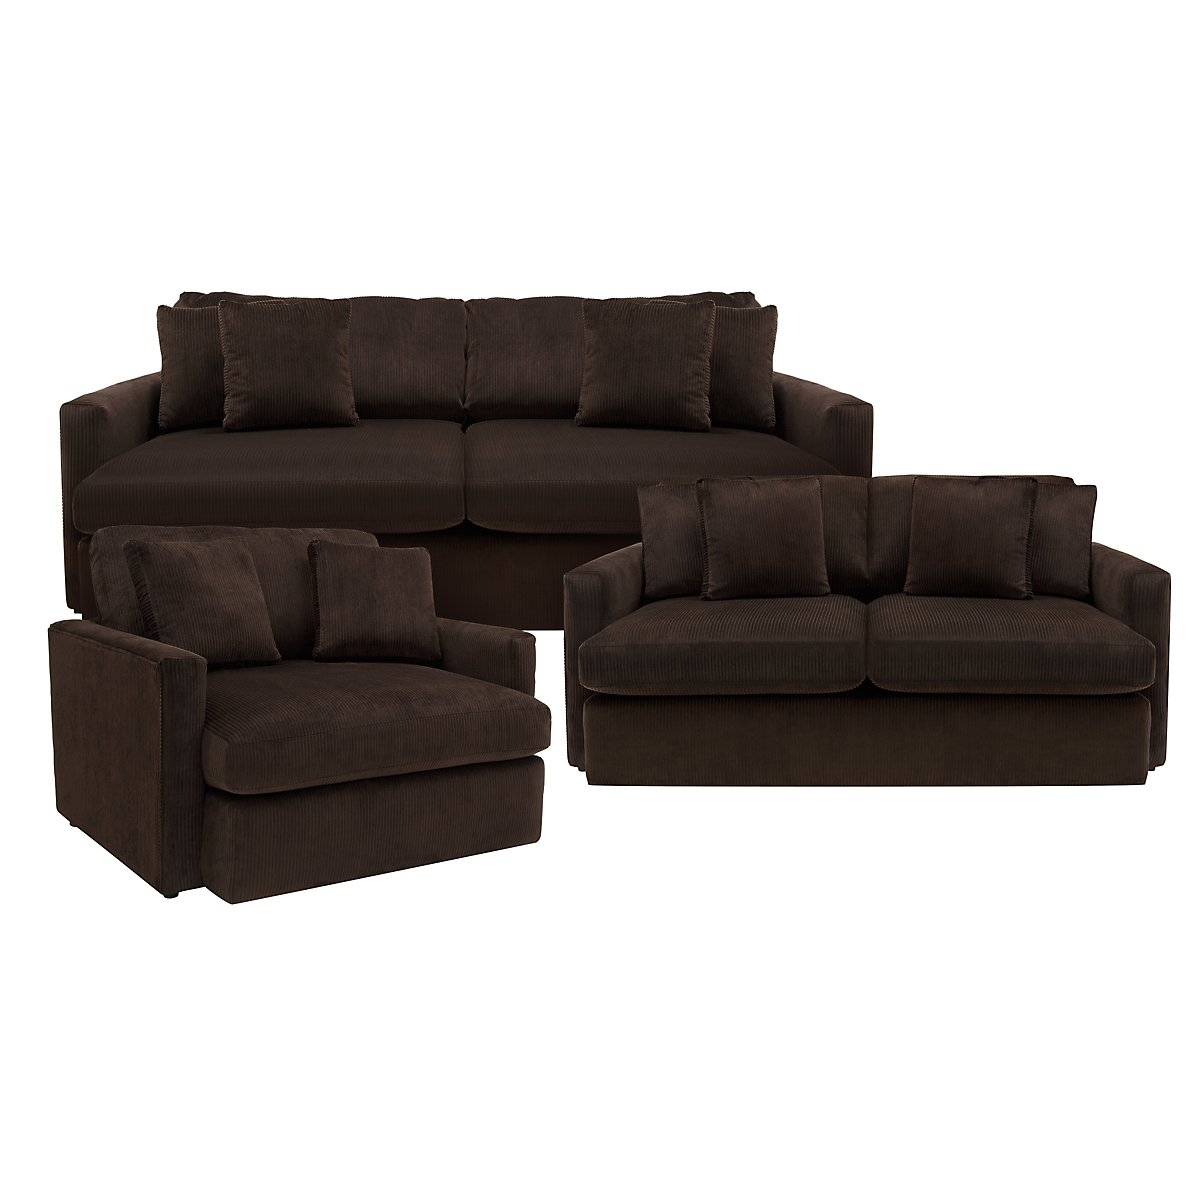 Dark brown microfiber sofa glasgow dark brown elephant for Microfiber sectional sofa